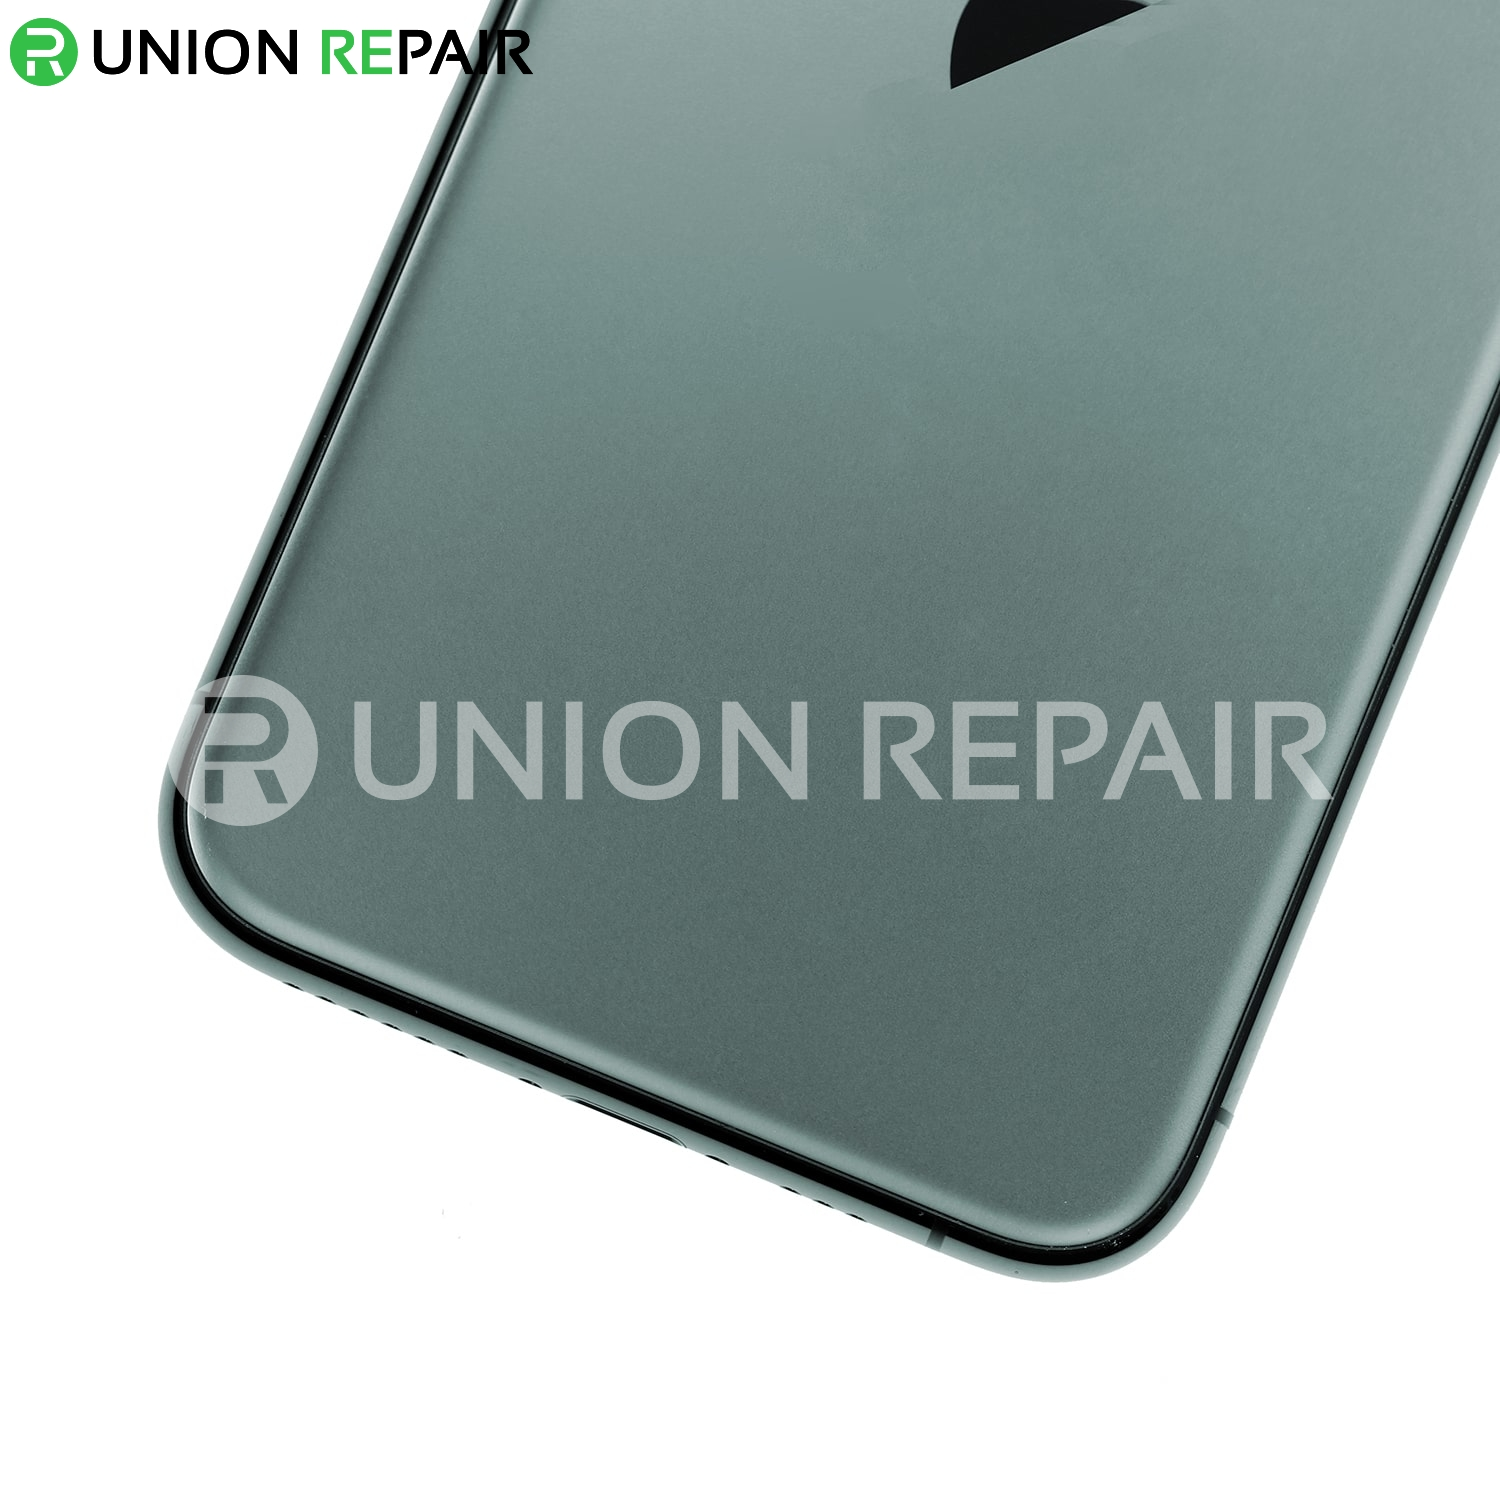 Replacement for iPhone 11 Pro Rear Housing with Frame - Midnight Green